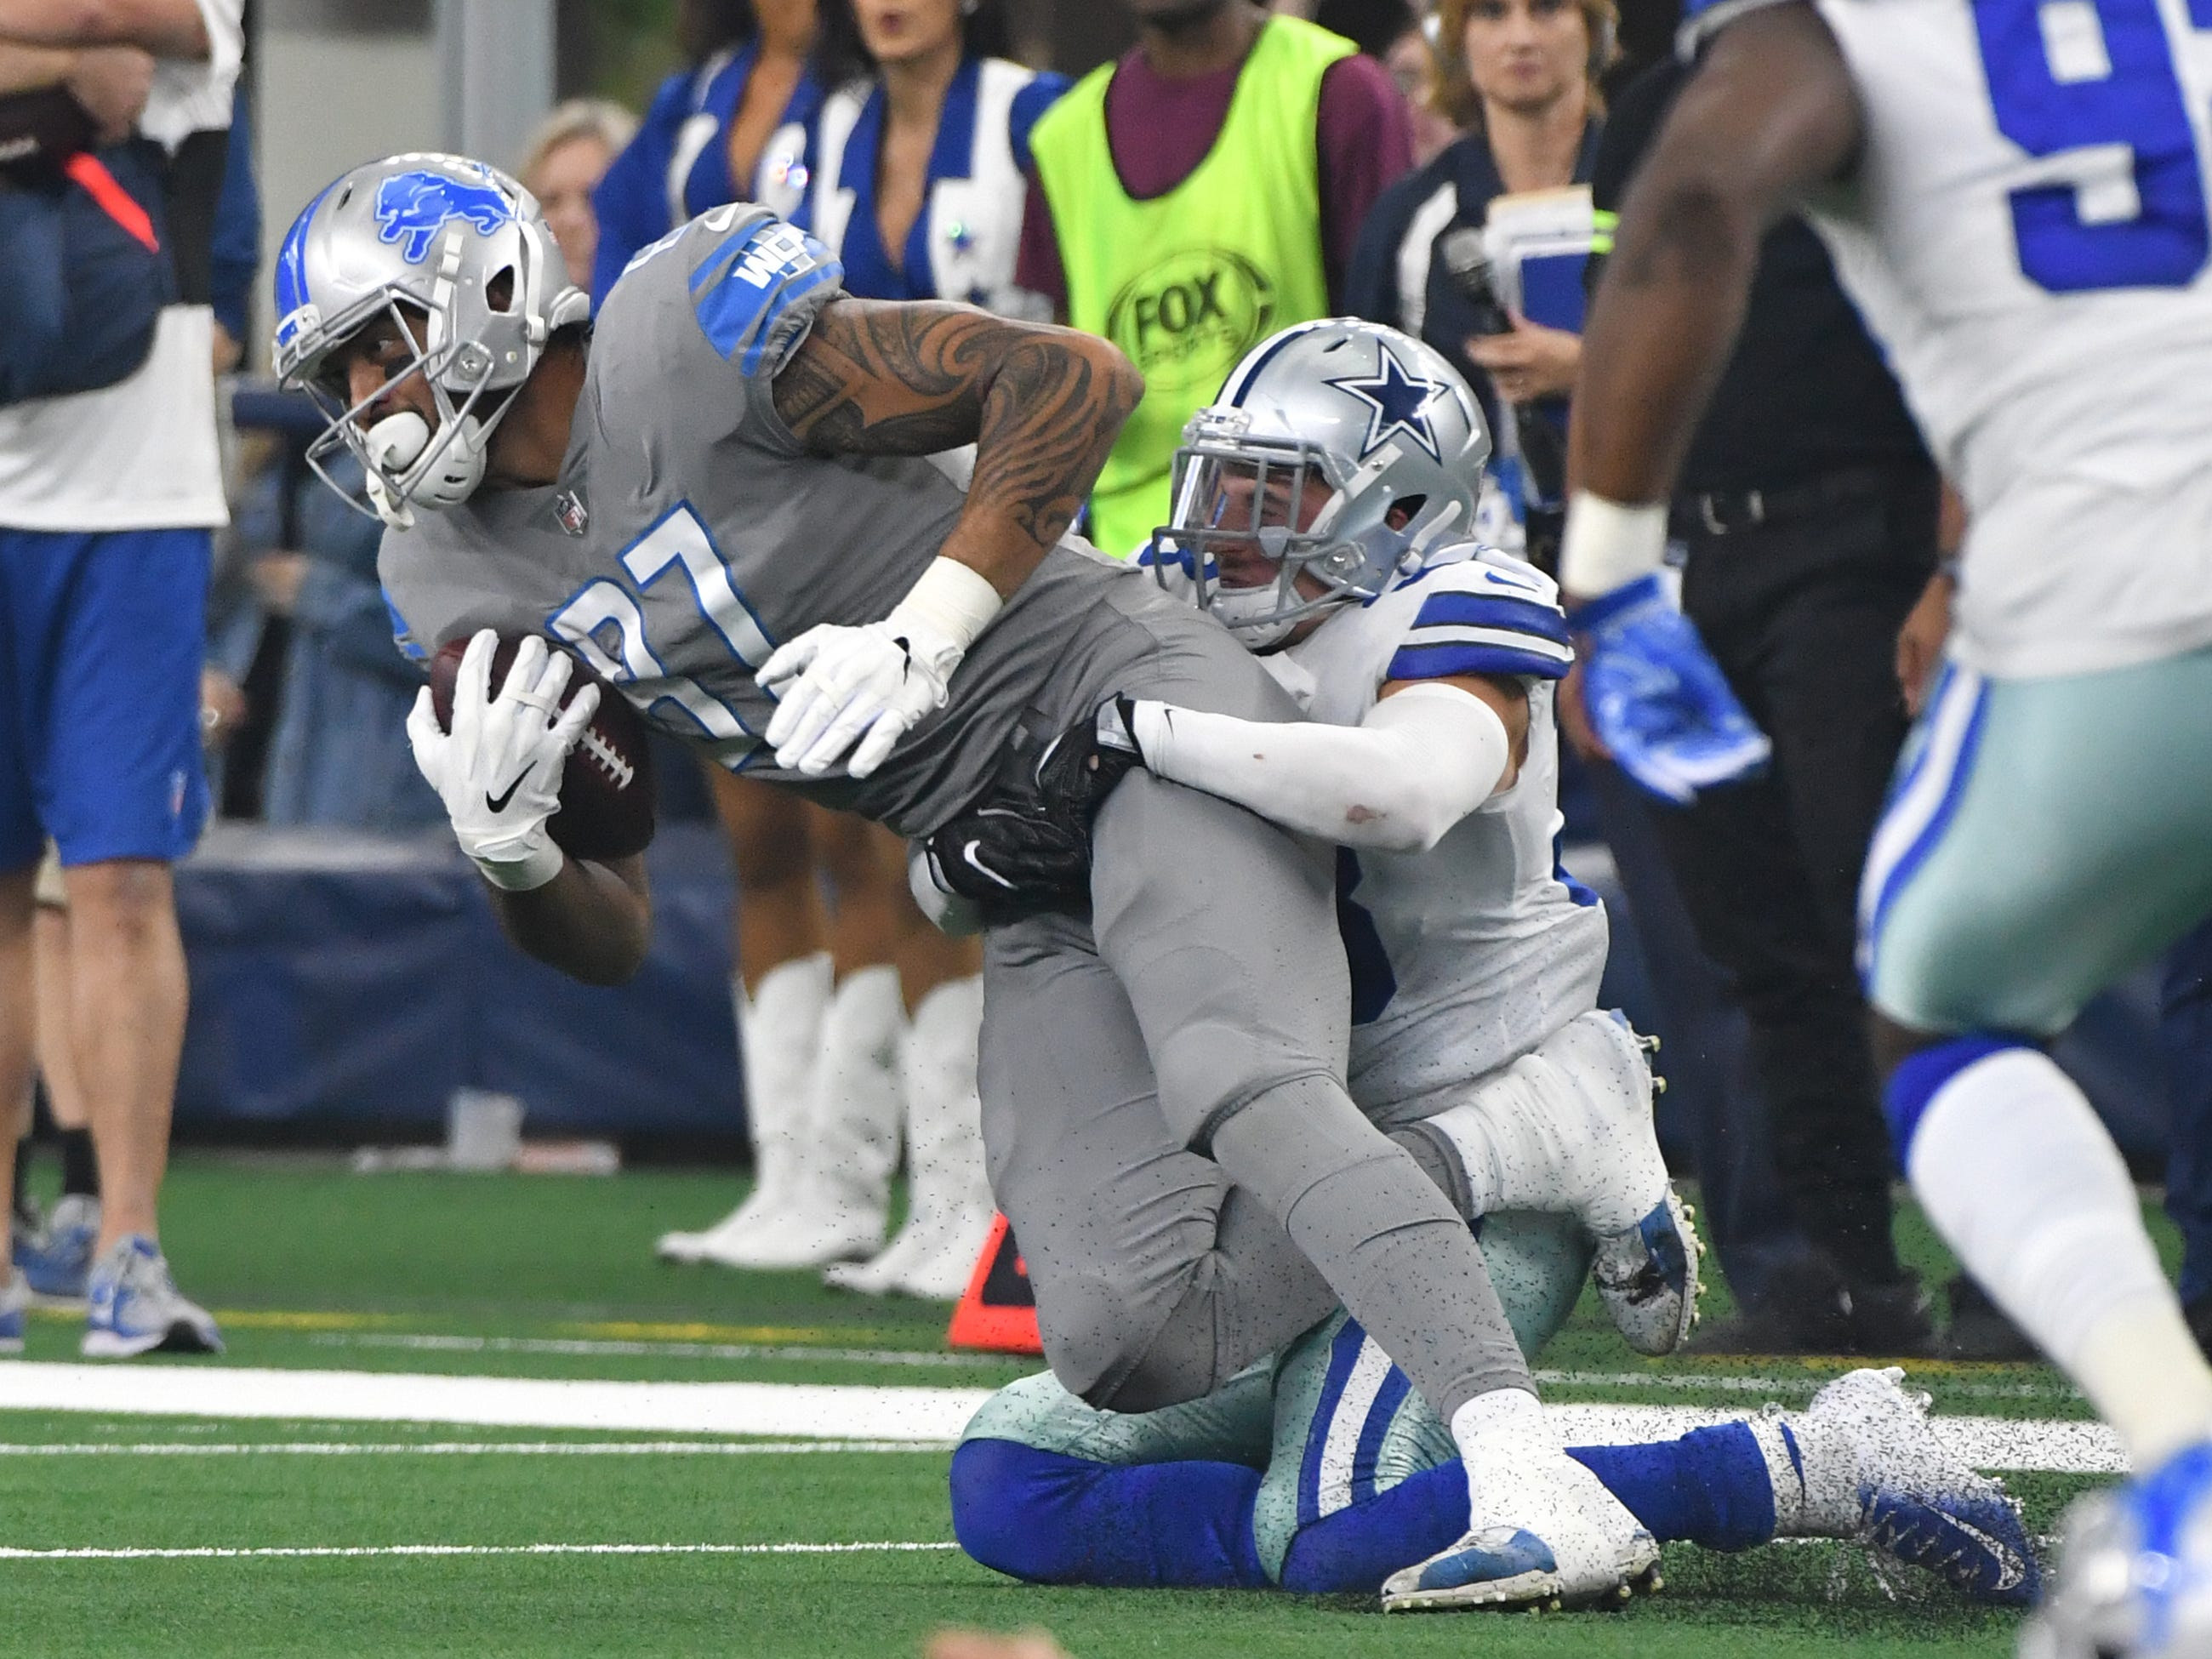 Lions tight end Levine Toilolo hangs onto a reception in front of Cowboys' Jeff Heath in the third quarter.